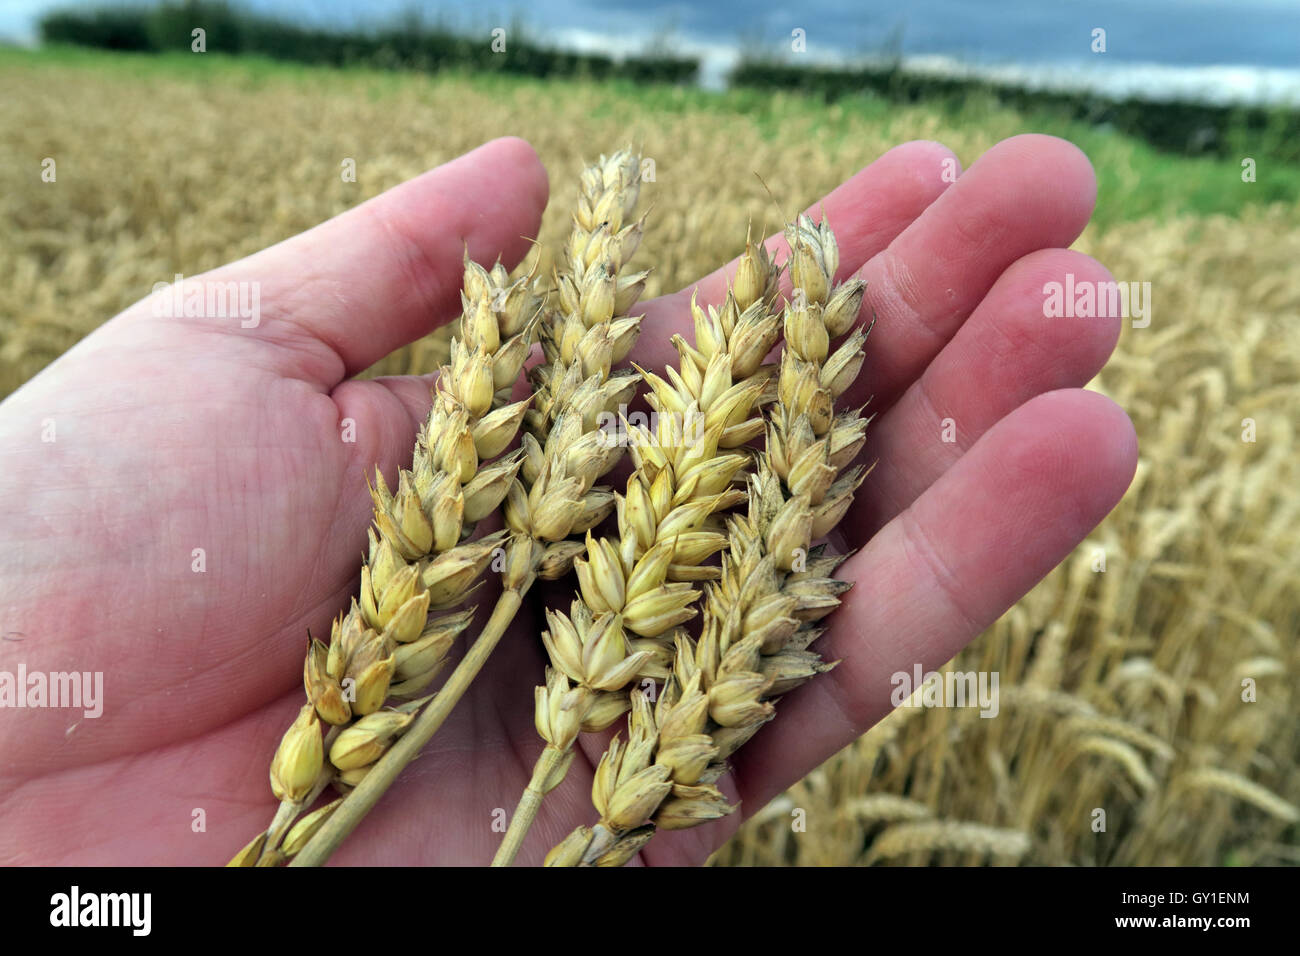 ear,of,corn,grain,brew,brewing,brewery,Cheshire,England,UK,English,British,GB,arable,farm,farming,agricultural,agriculture,außen,außenaufnahme,aussenaufnahmen,grow,growing,cereal,cereals,close,closeup,close-up,closeups,close-ups,crop,crops,food,foodstuff,grain,nourishment,nutrition,palm,finger,GoTonySmith,@HotpixUK,Tony,Smith,palm,nutzpflanze,nutzpflanzen,gluten,free,ingredient,plant,crop,staple,staples,sunny,summer,day,summers,country,countryside,gold,golden,yellow,harvest,festival,wheat,corn,cultivated,natural,nature,rye,yellow,Buy Pictures of,Buy Images Of,Images of,Stock Images,Tony Smith,harvest festival,Ears of wheat